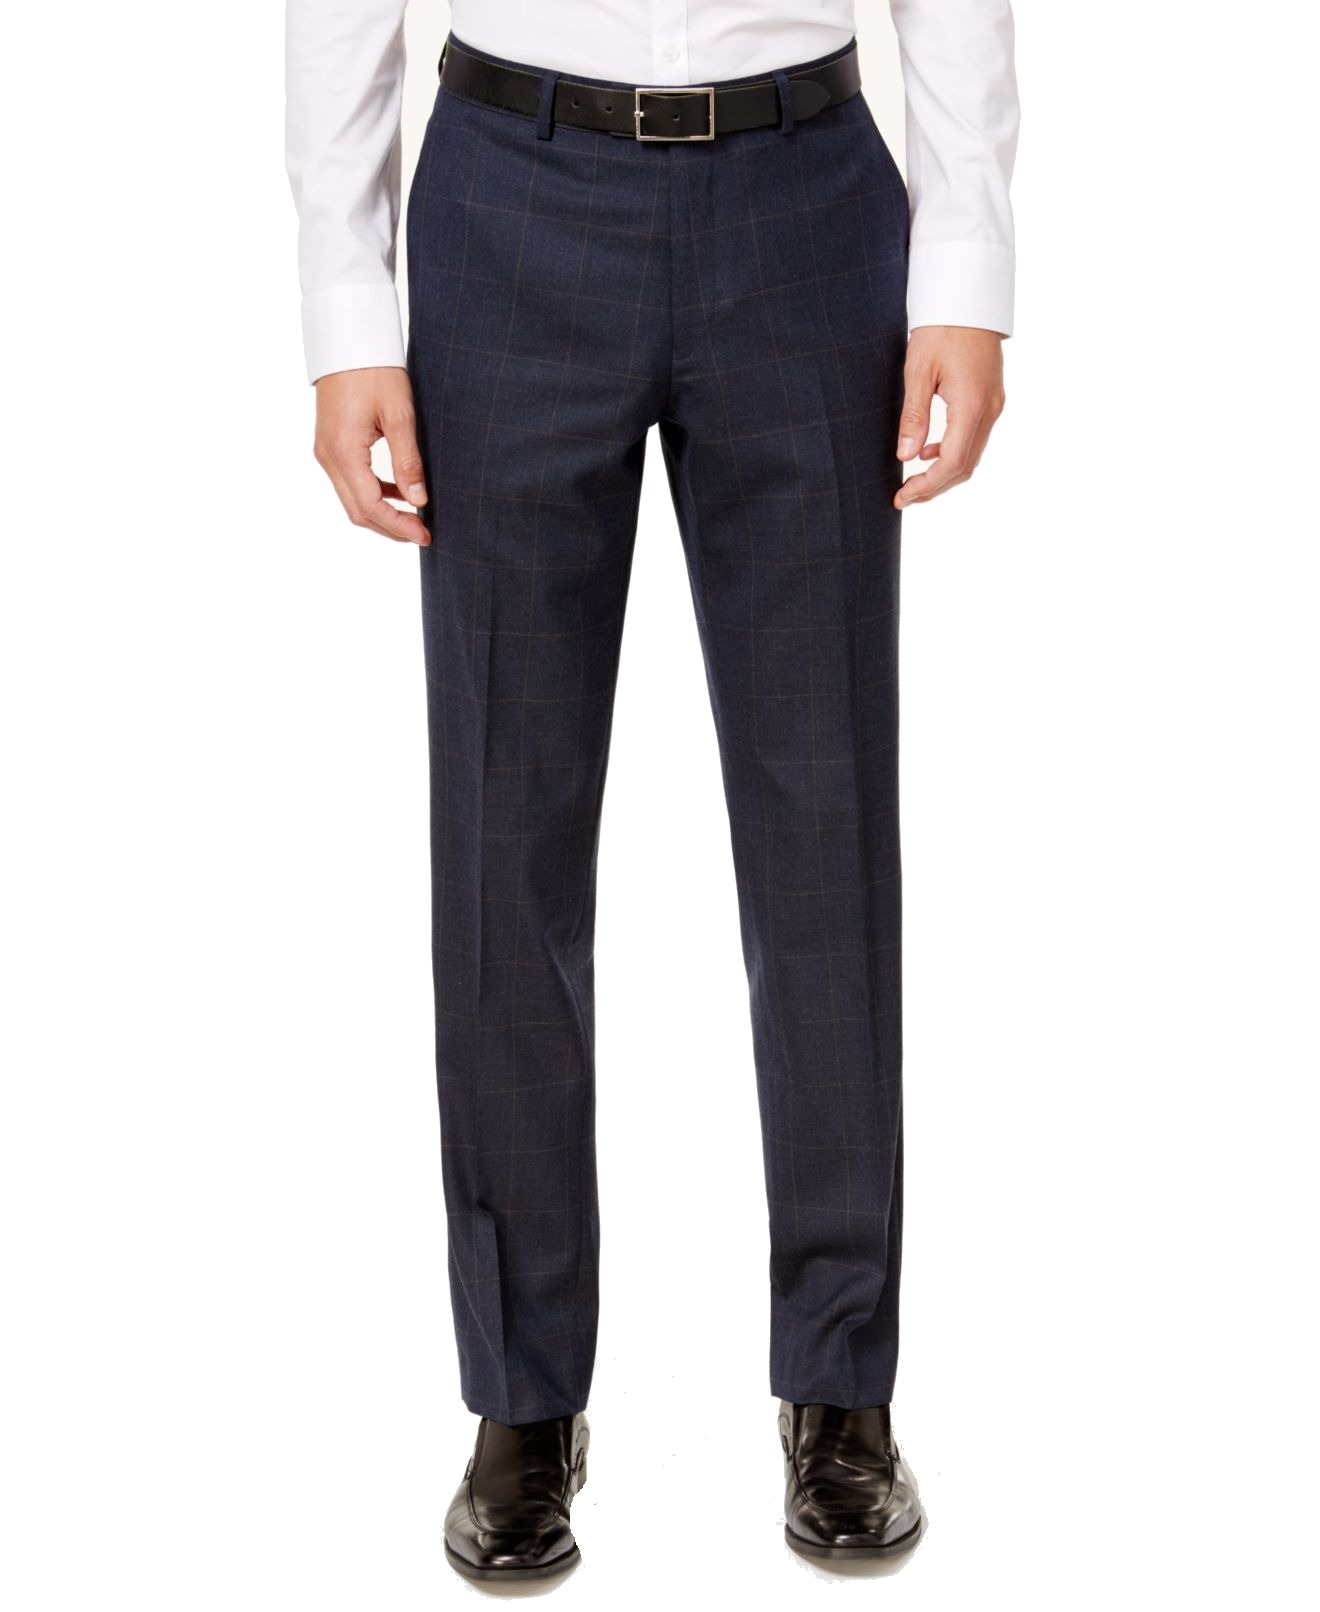 bar III Mens Active Stretch Dress Pant Slacks